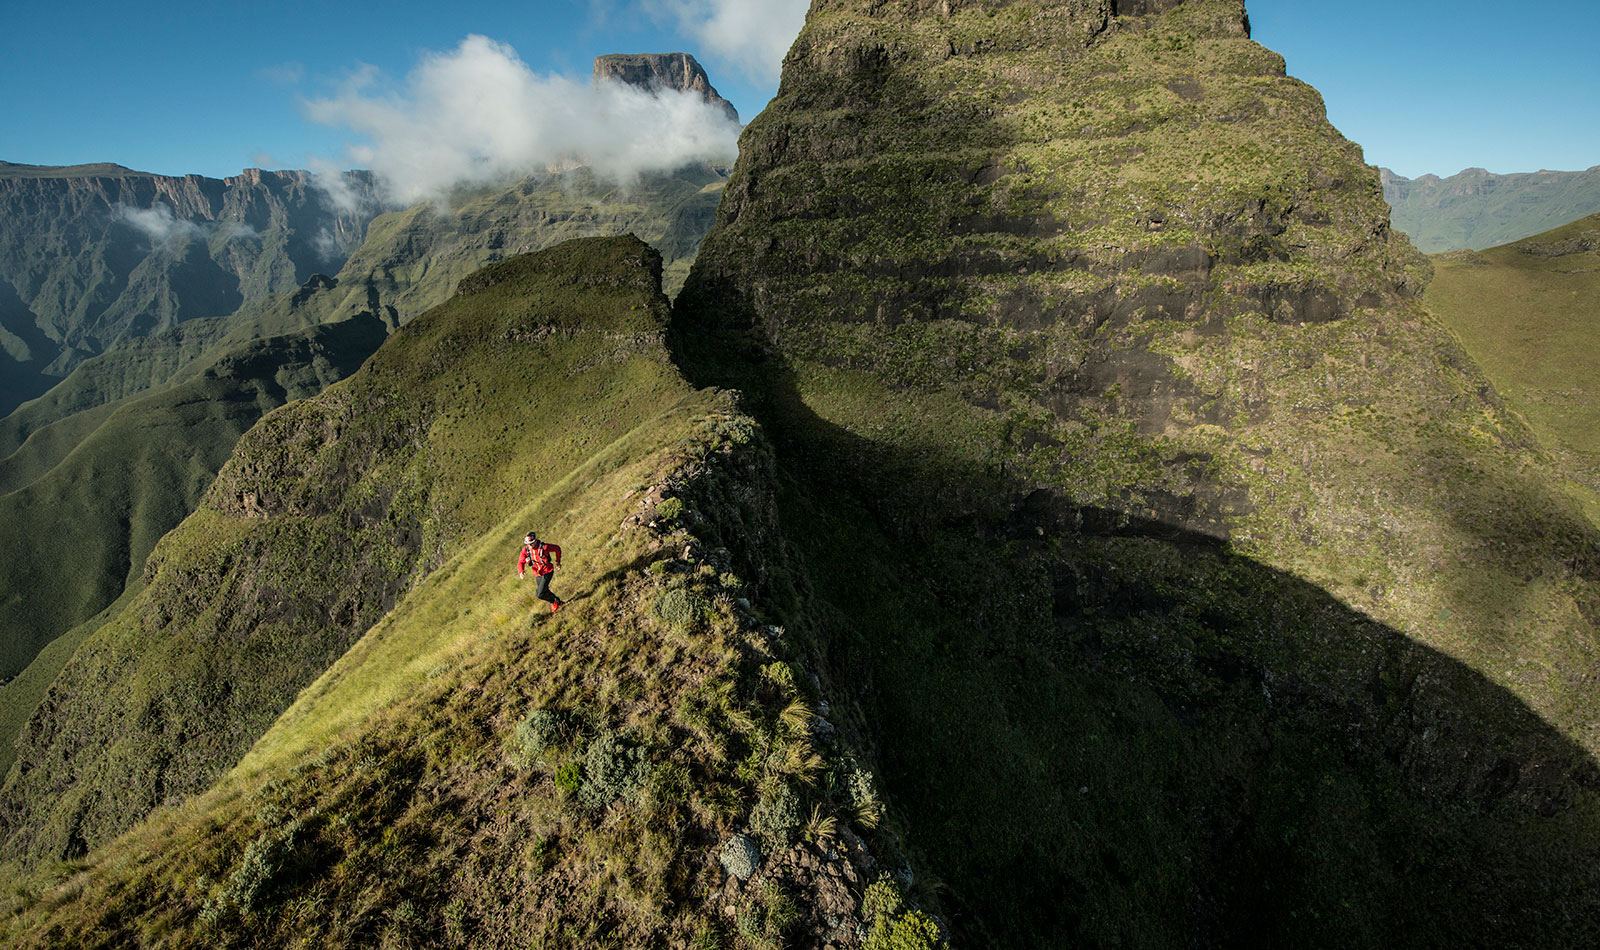 Ultrarunner Sets New Solo Speed Mark On South Africas Drakensberg Grand Traverse